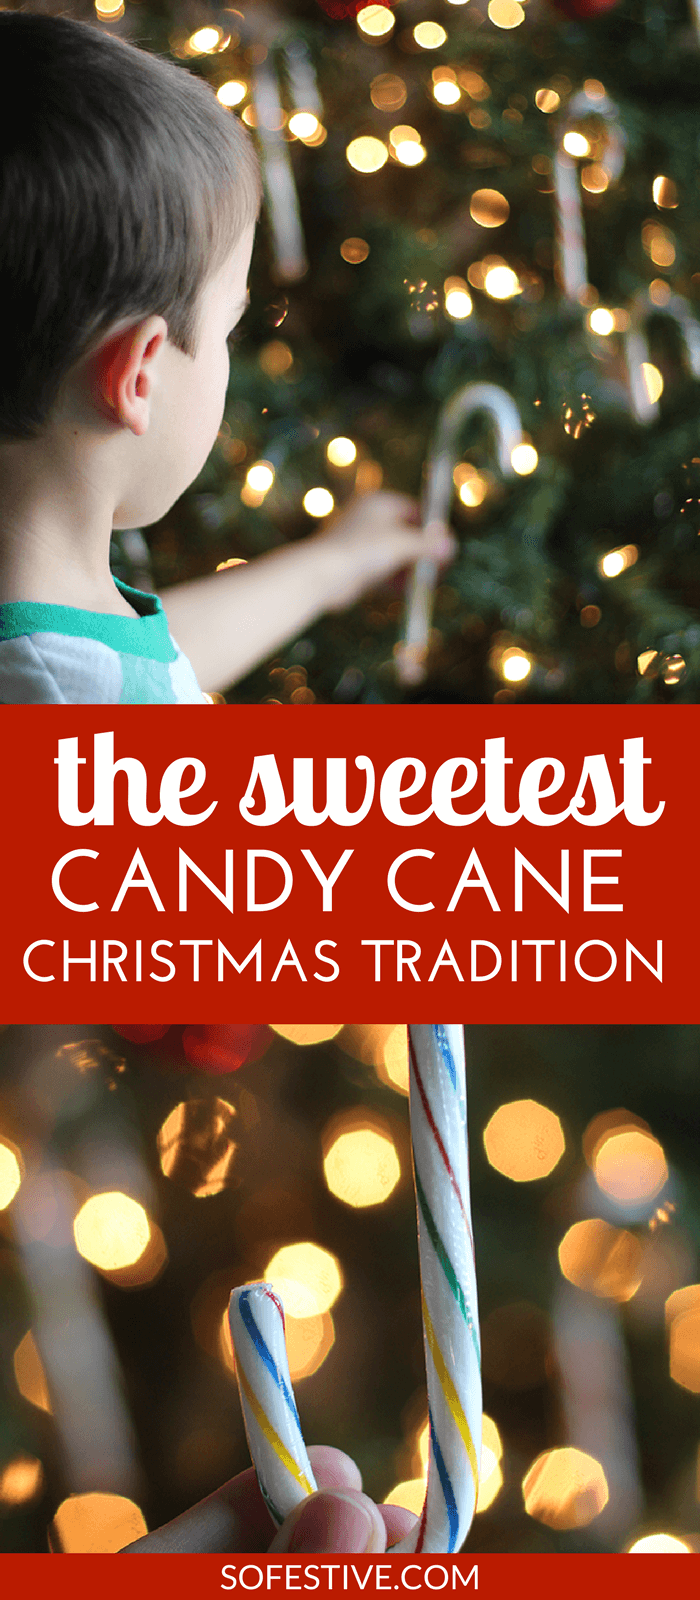 The Sweetest Candy Cane Christmas Tradition- It's Not What You Think!